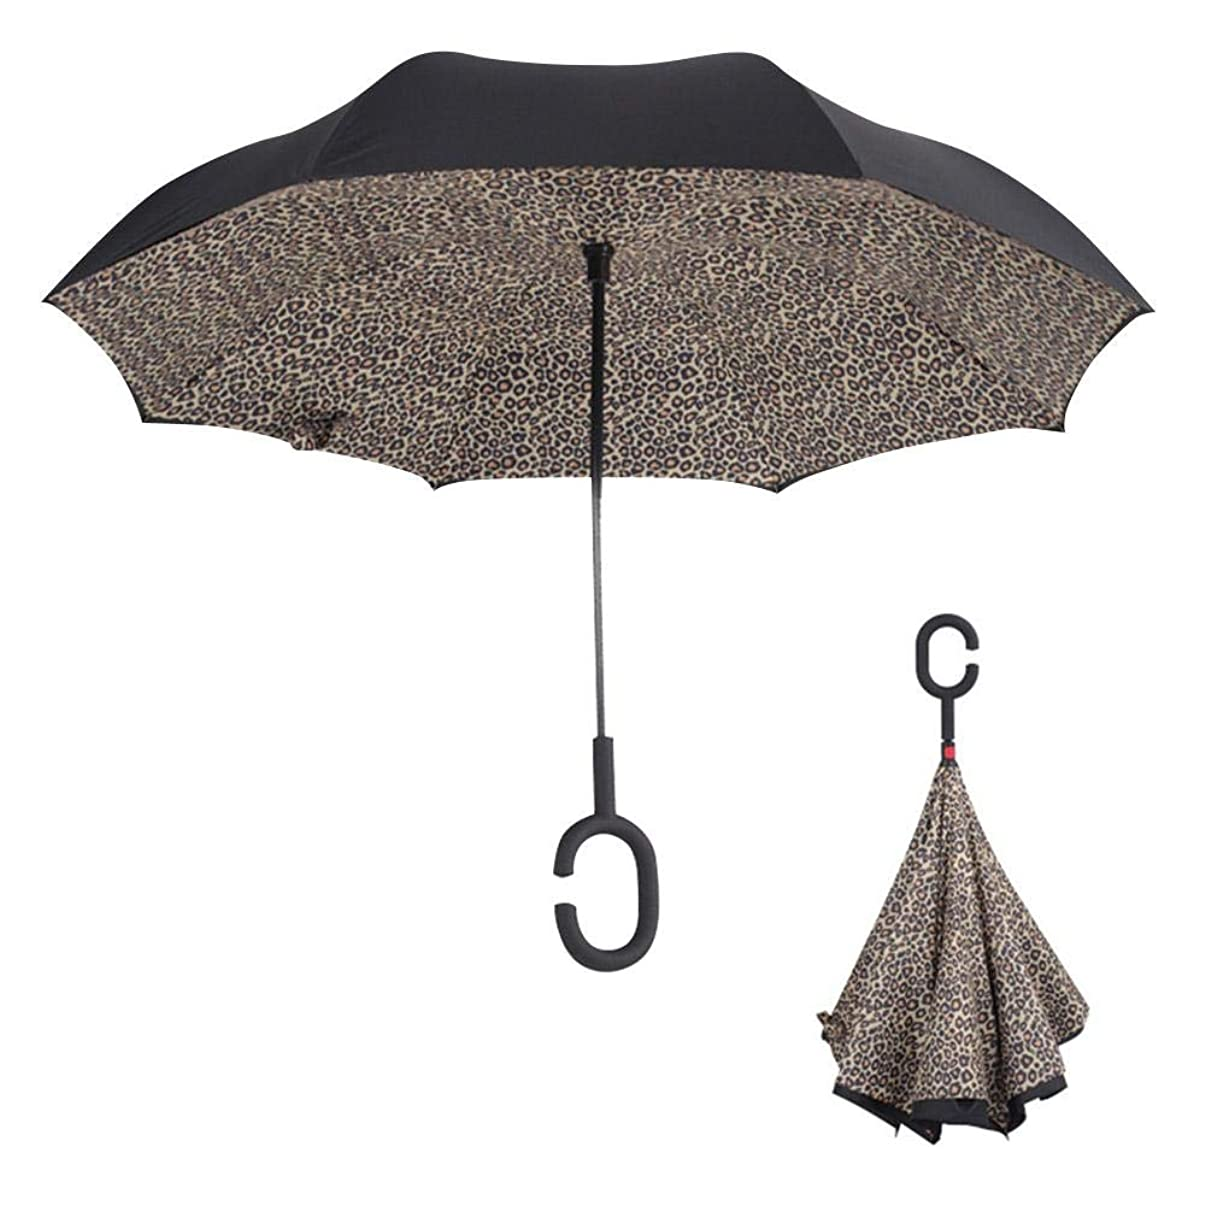 total-shop Umbrella Reverse Double-Layer Reverse Umbrella Straight Rod Car with Uv Protection Weatherproof Windproof Umbrella for Women Upside Down Umbrella with c-Shaped Handle